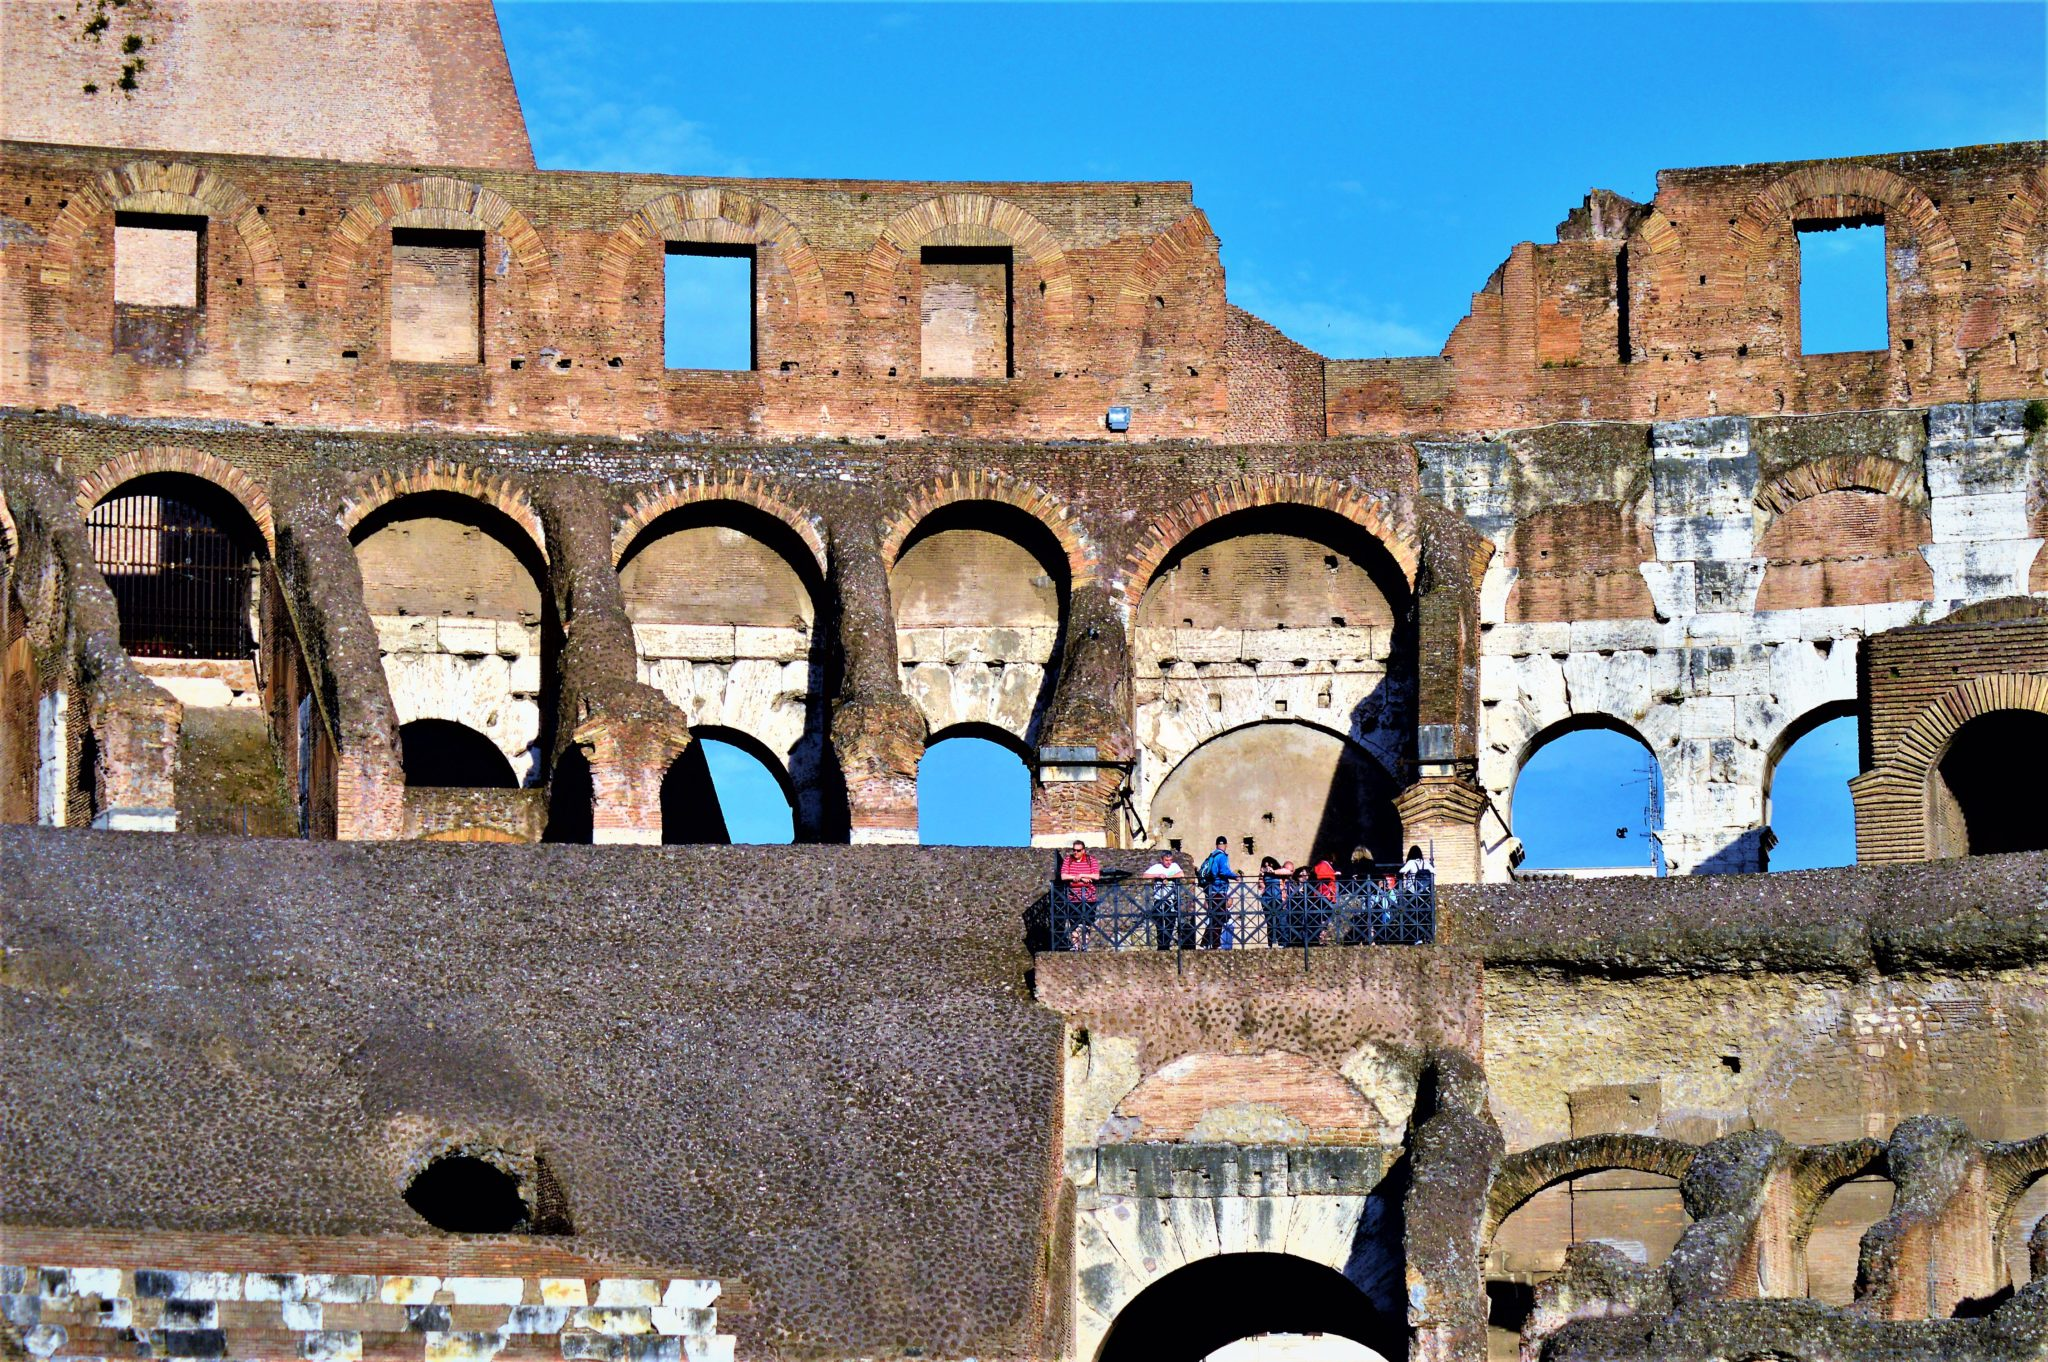 Tourists inside the Roman Colosseum, Rome, Italy